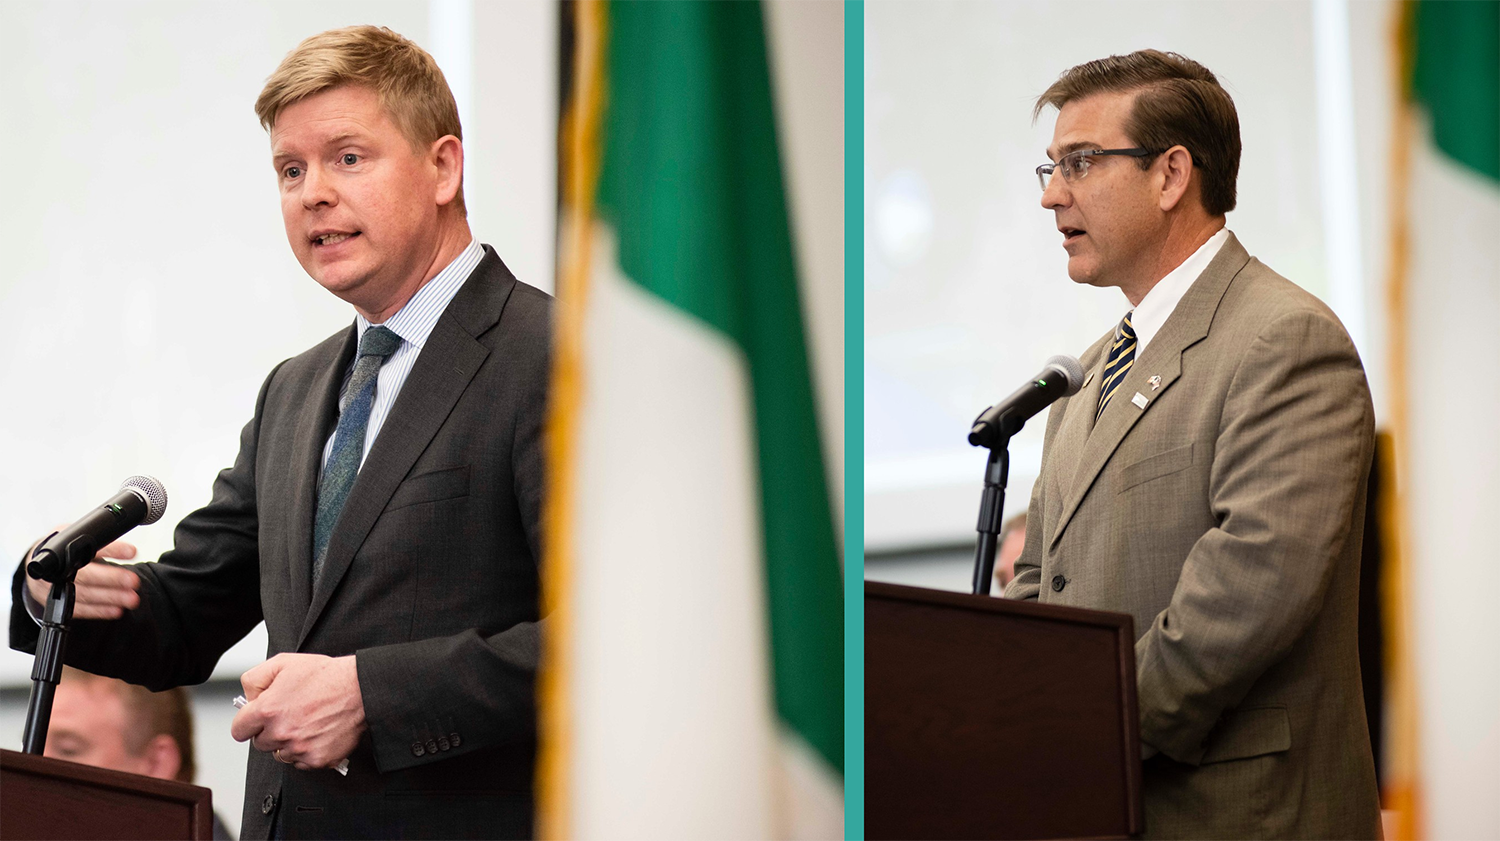 Above left: The podium speakers included    Shane Stephens   , Consul General of Ireland for the Southeastern United States. The Irish Government's Emigrant Support Program has provided $70,000 in funding for Georgia Southern students to research the historical connection between the County of Wexford and the City of Savannah. • Above right: Another podium speaker,    John Coleman   , represented the Savannah Economic Development Authority (SEDA), of whose Board of Directors he is Vice-Chair. Support from SEDA has been critical to TradeBridge, a initiative that advances trade and investment between Wexford-Southeastern Ireland and Savannah-Coastal Georgia.